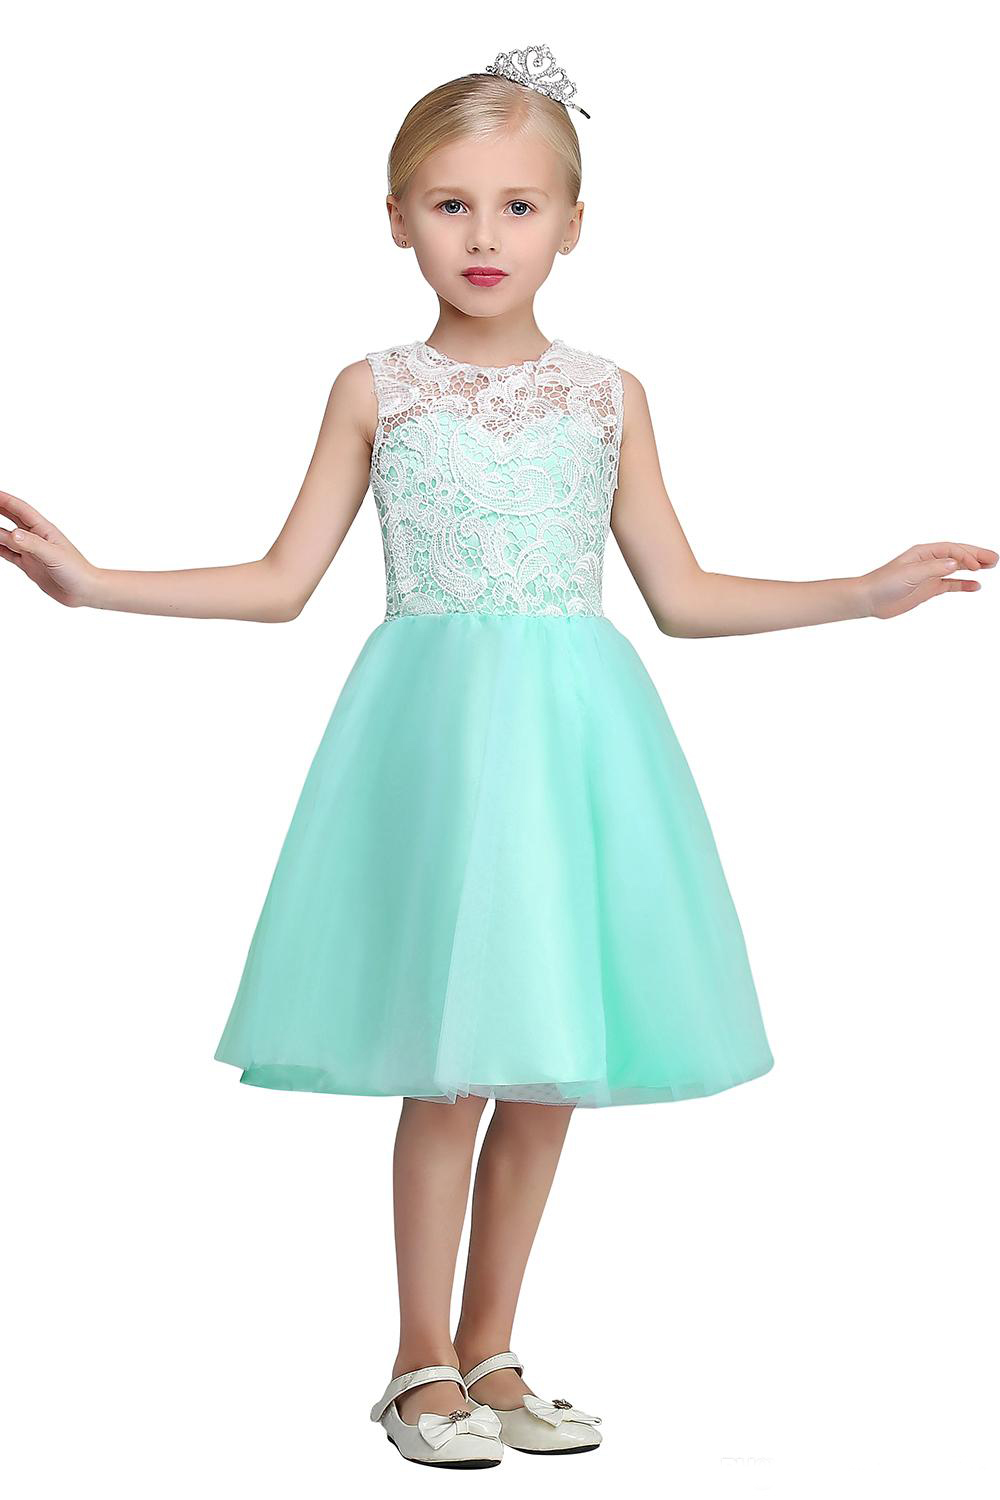 2017 new white lace top cheap flower girls dresses crew neck knee 2017 new white lace top cheap flower girls dresses crew neck knee length mint green tulle mother daughter dresses for girl in matching family outfits from izmirmasajfo